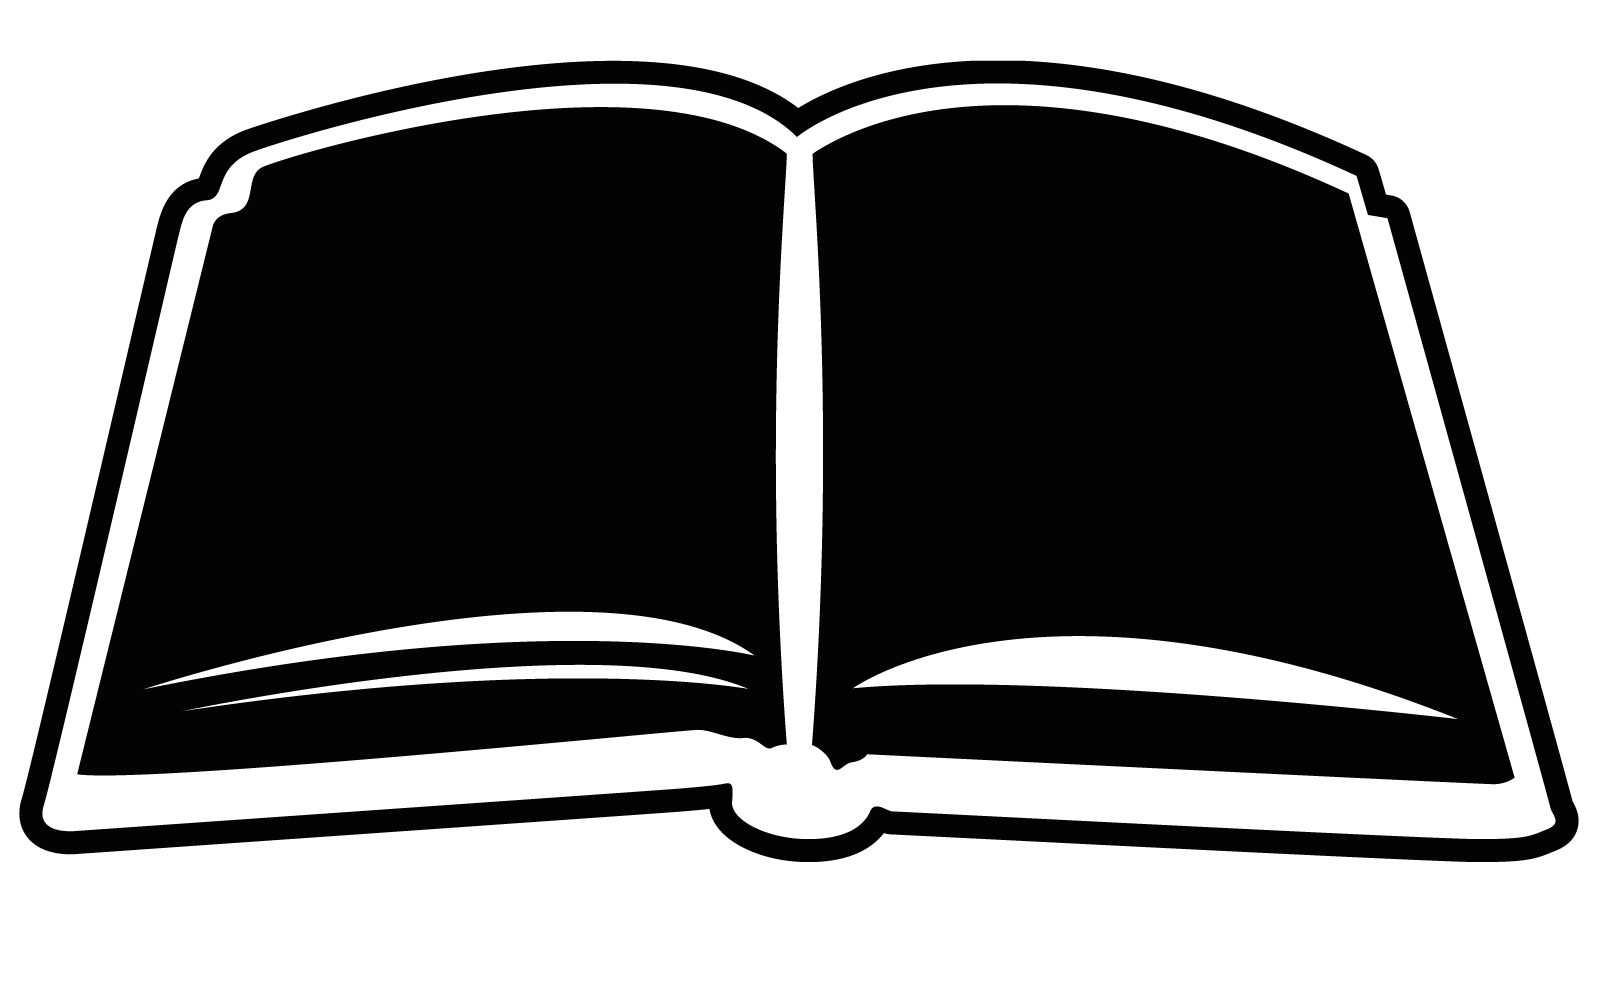 hight resolution of open bible book outline clipart